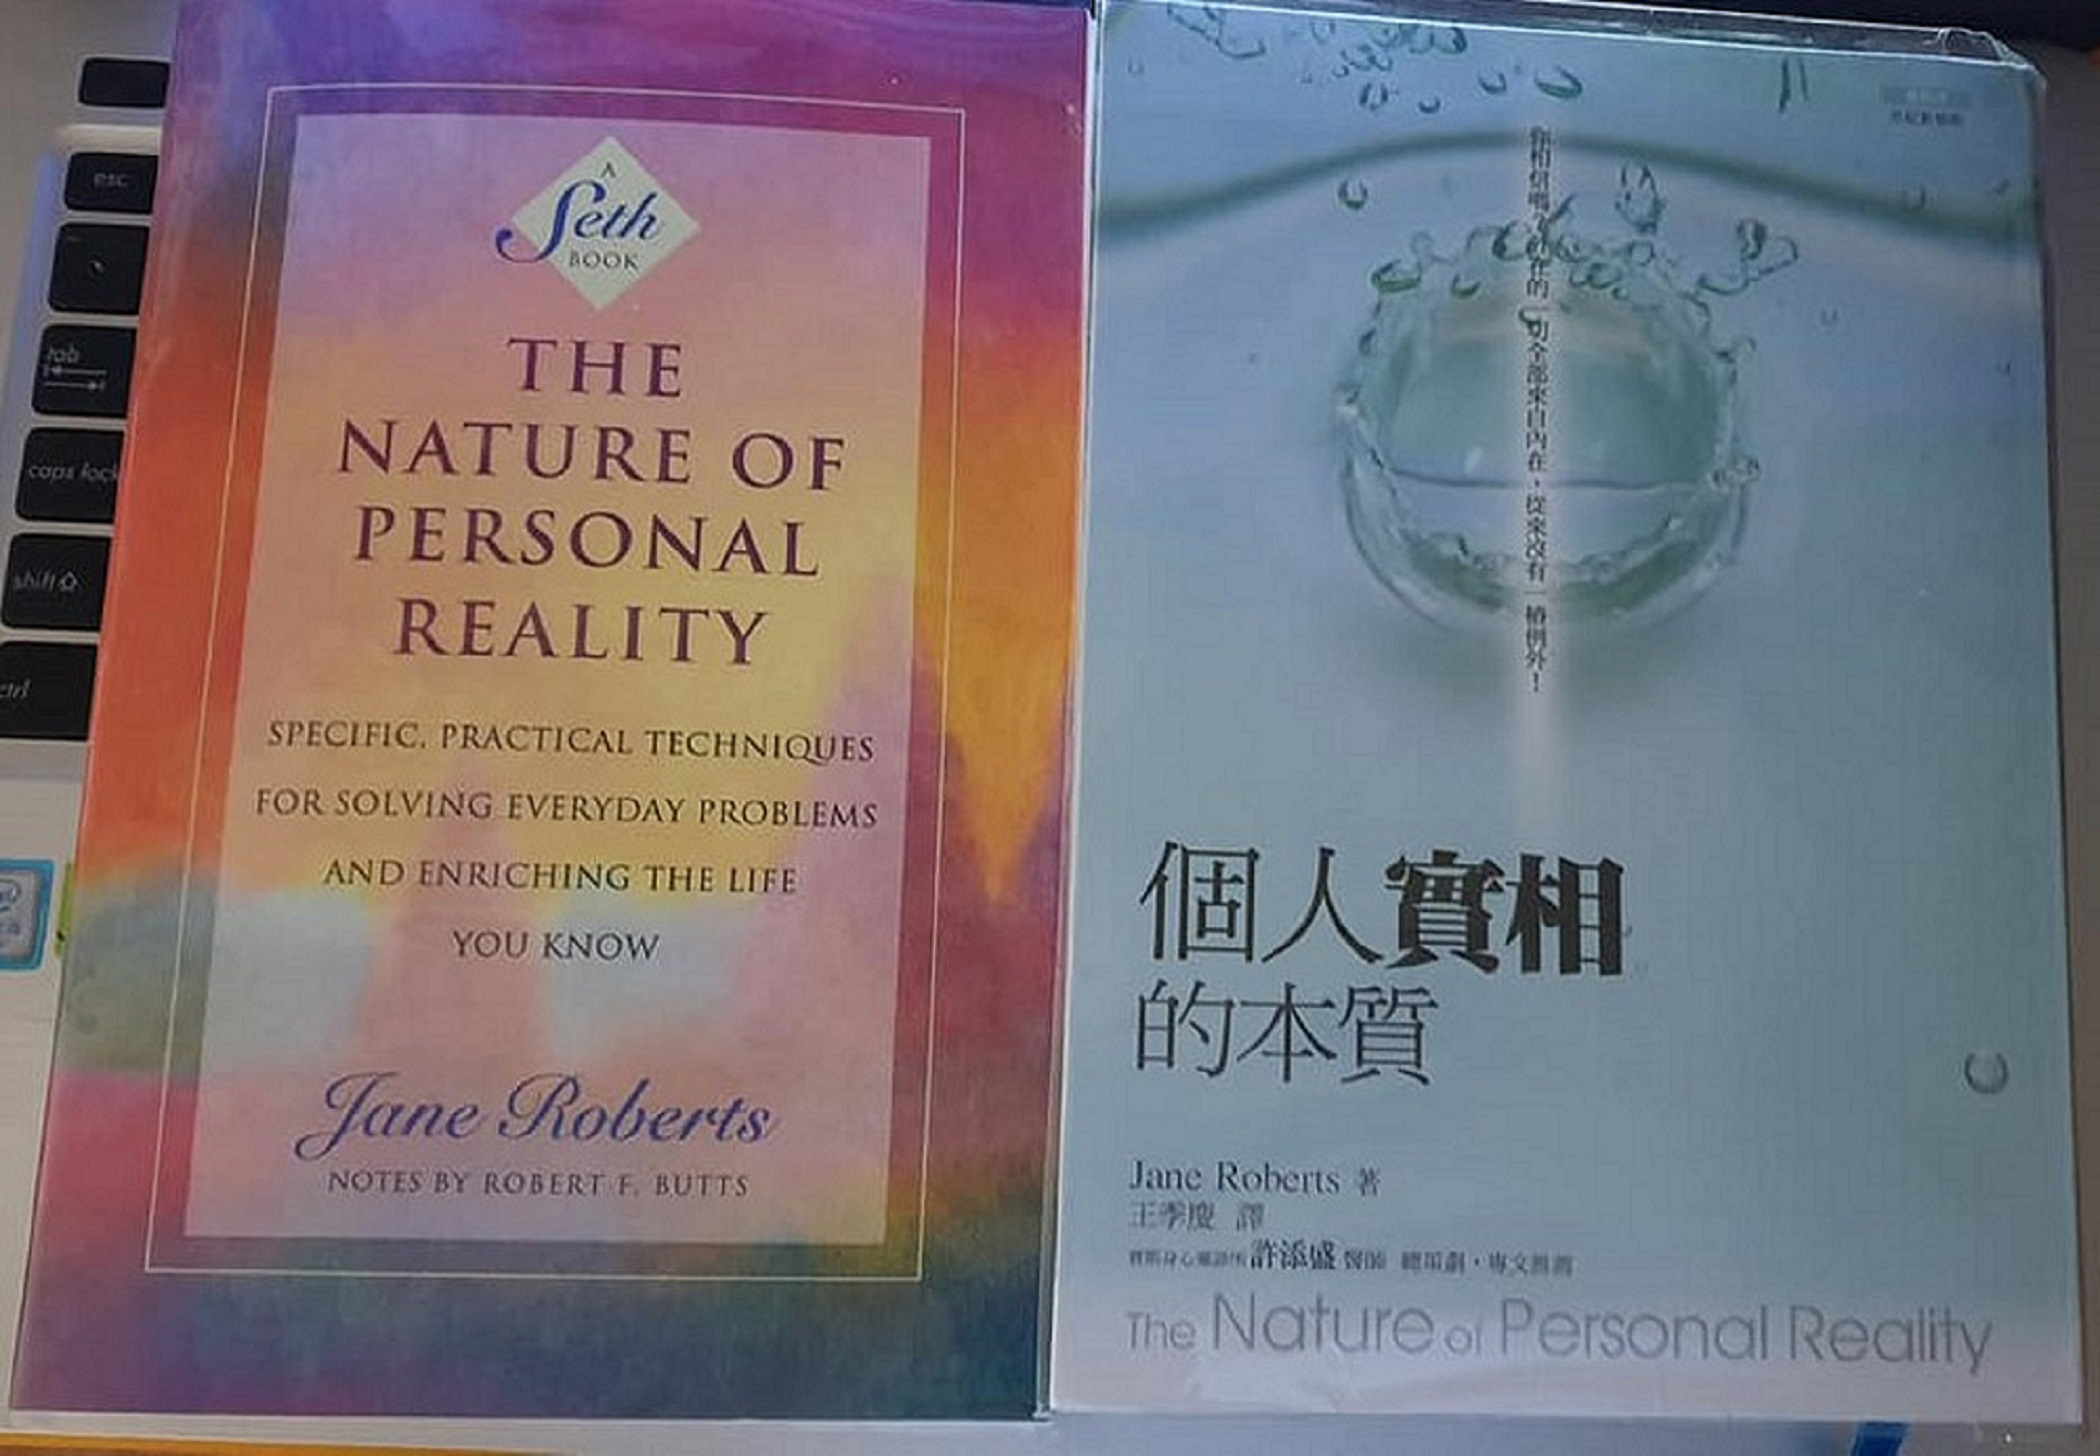 EP1 / 個人實相的本質 The Nature of Personal Reality